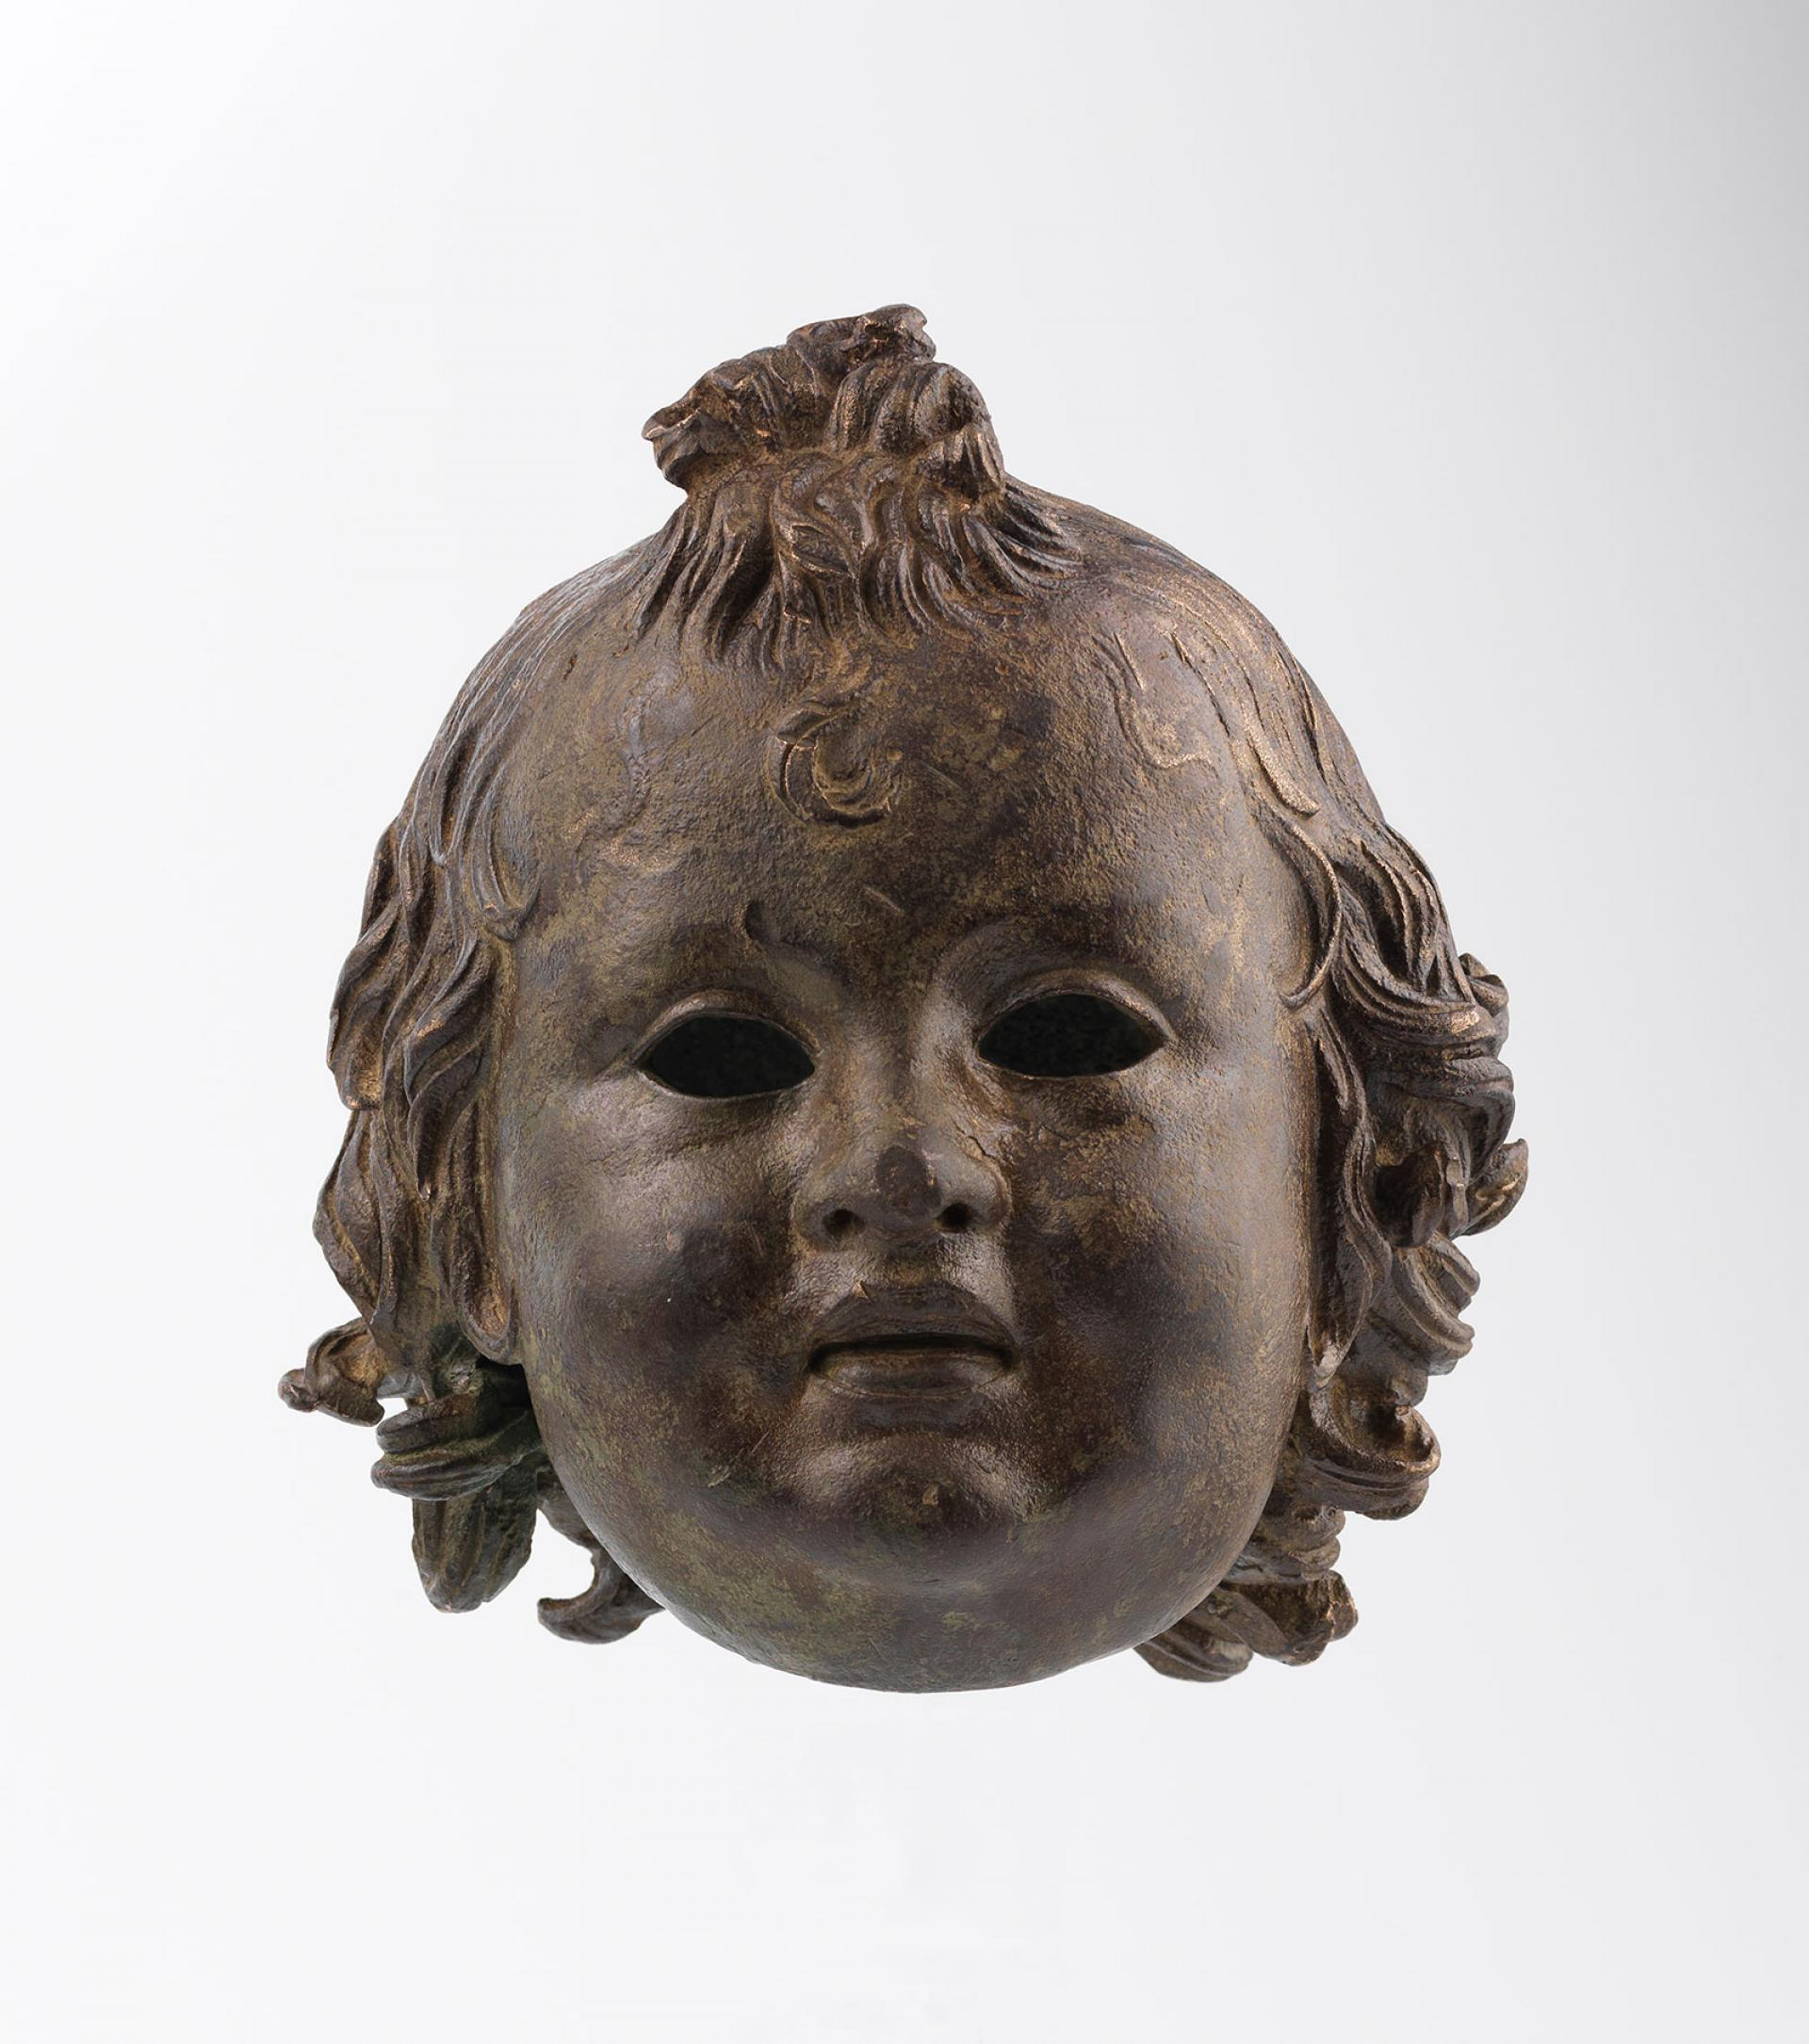 SHM 5723 - Head of a child BronzeHellenistic Period2nd century BC